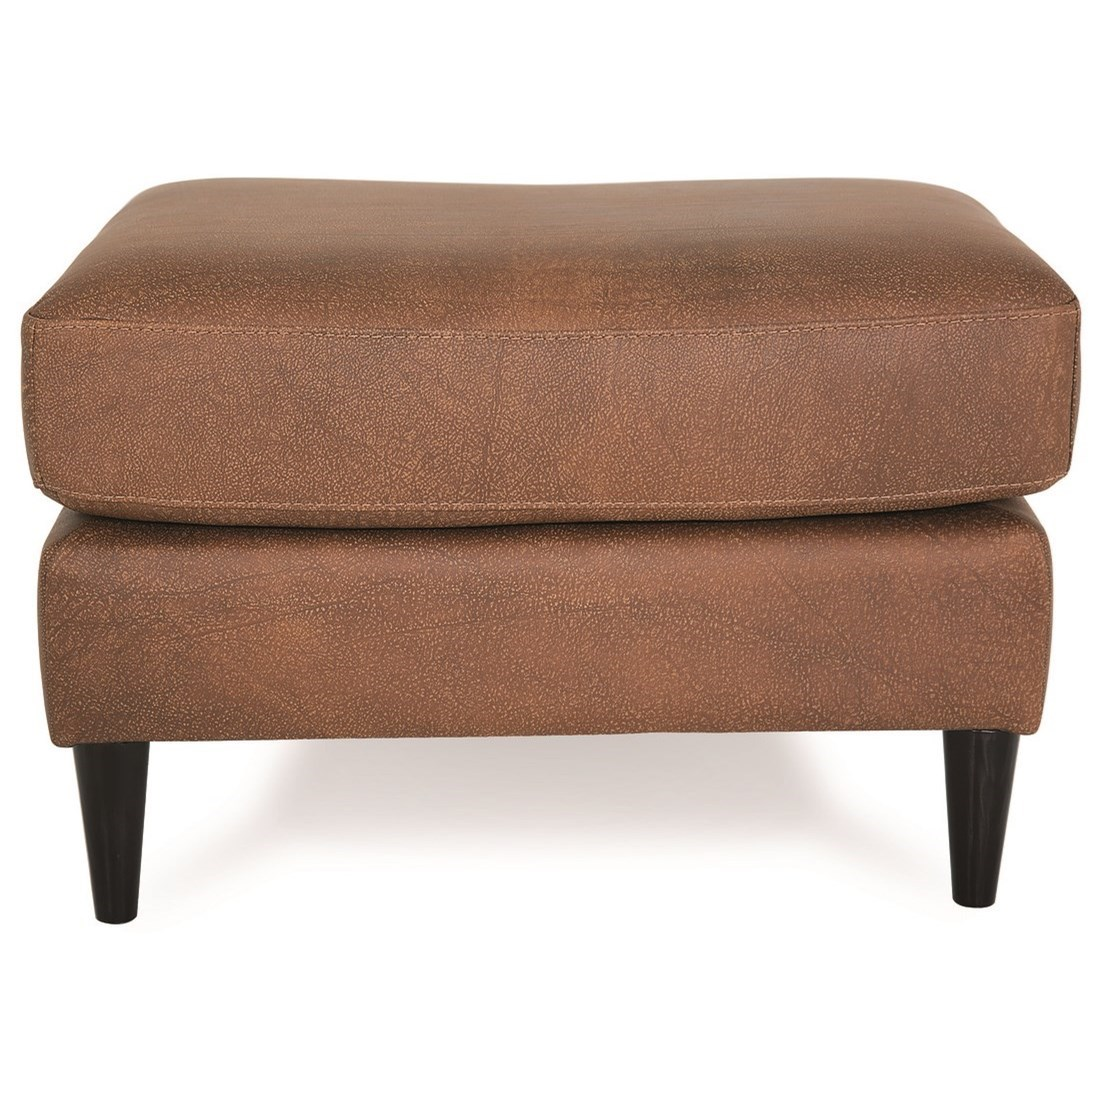 Atticus Ottoman by Palliser at Esprit Decor Home Furnishings